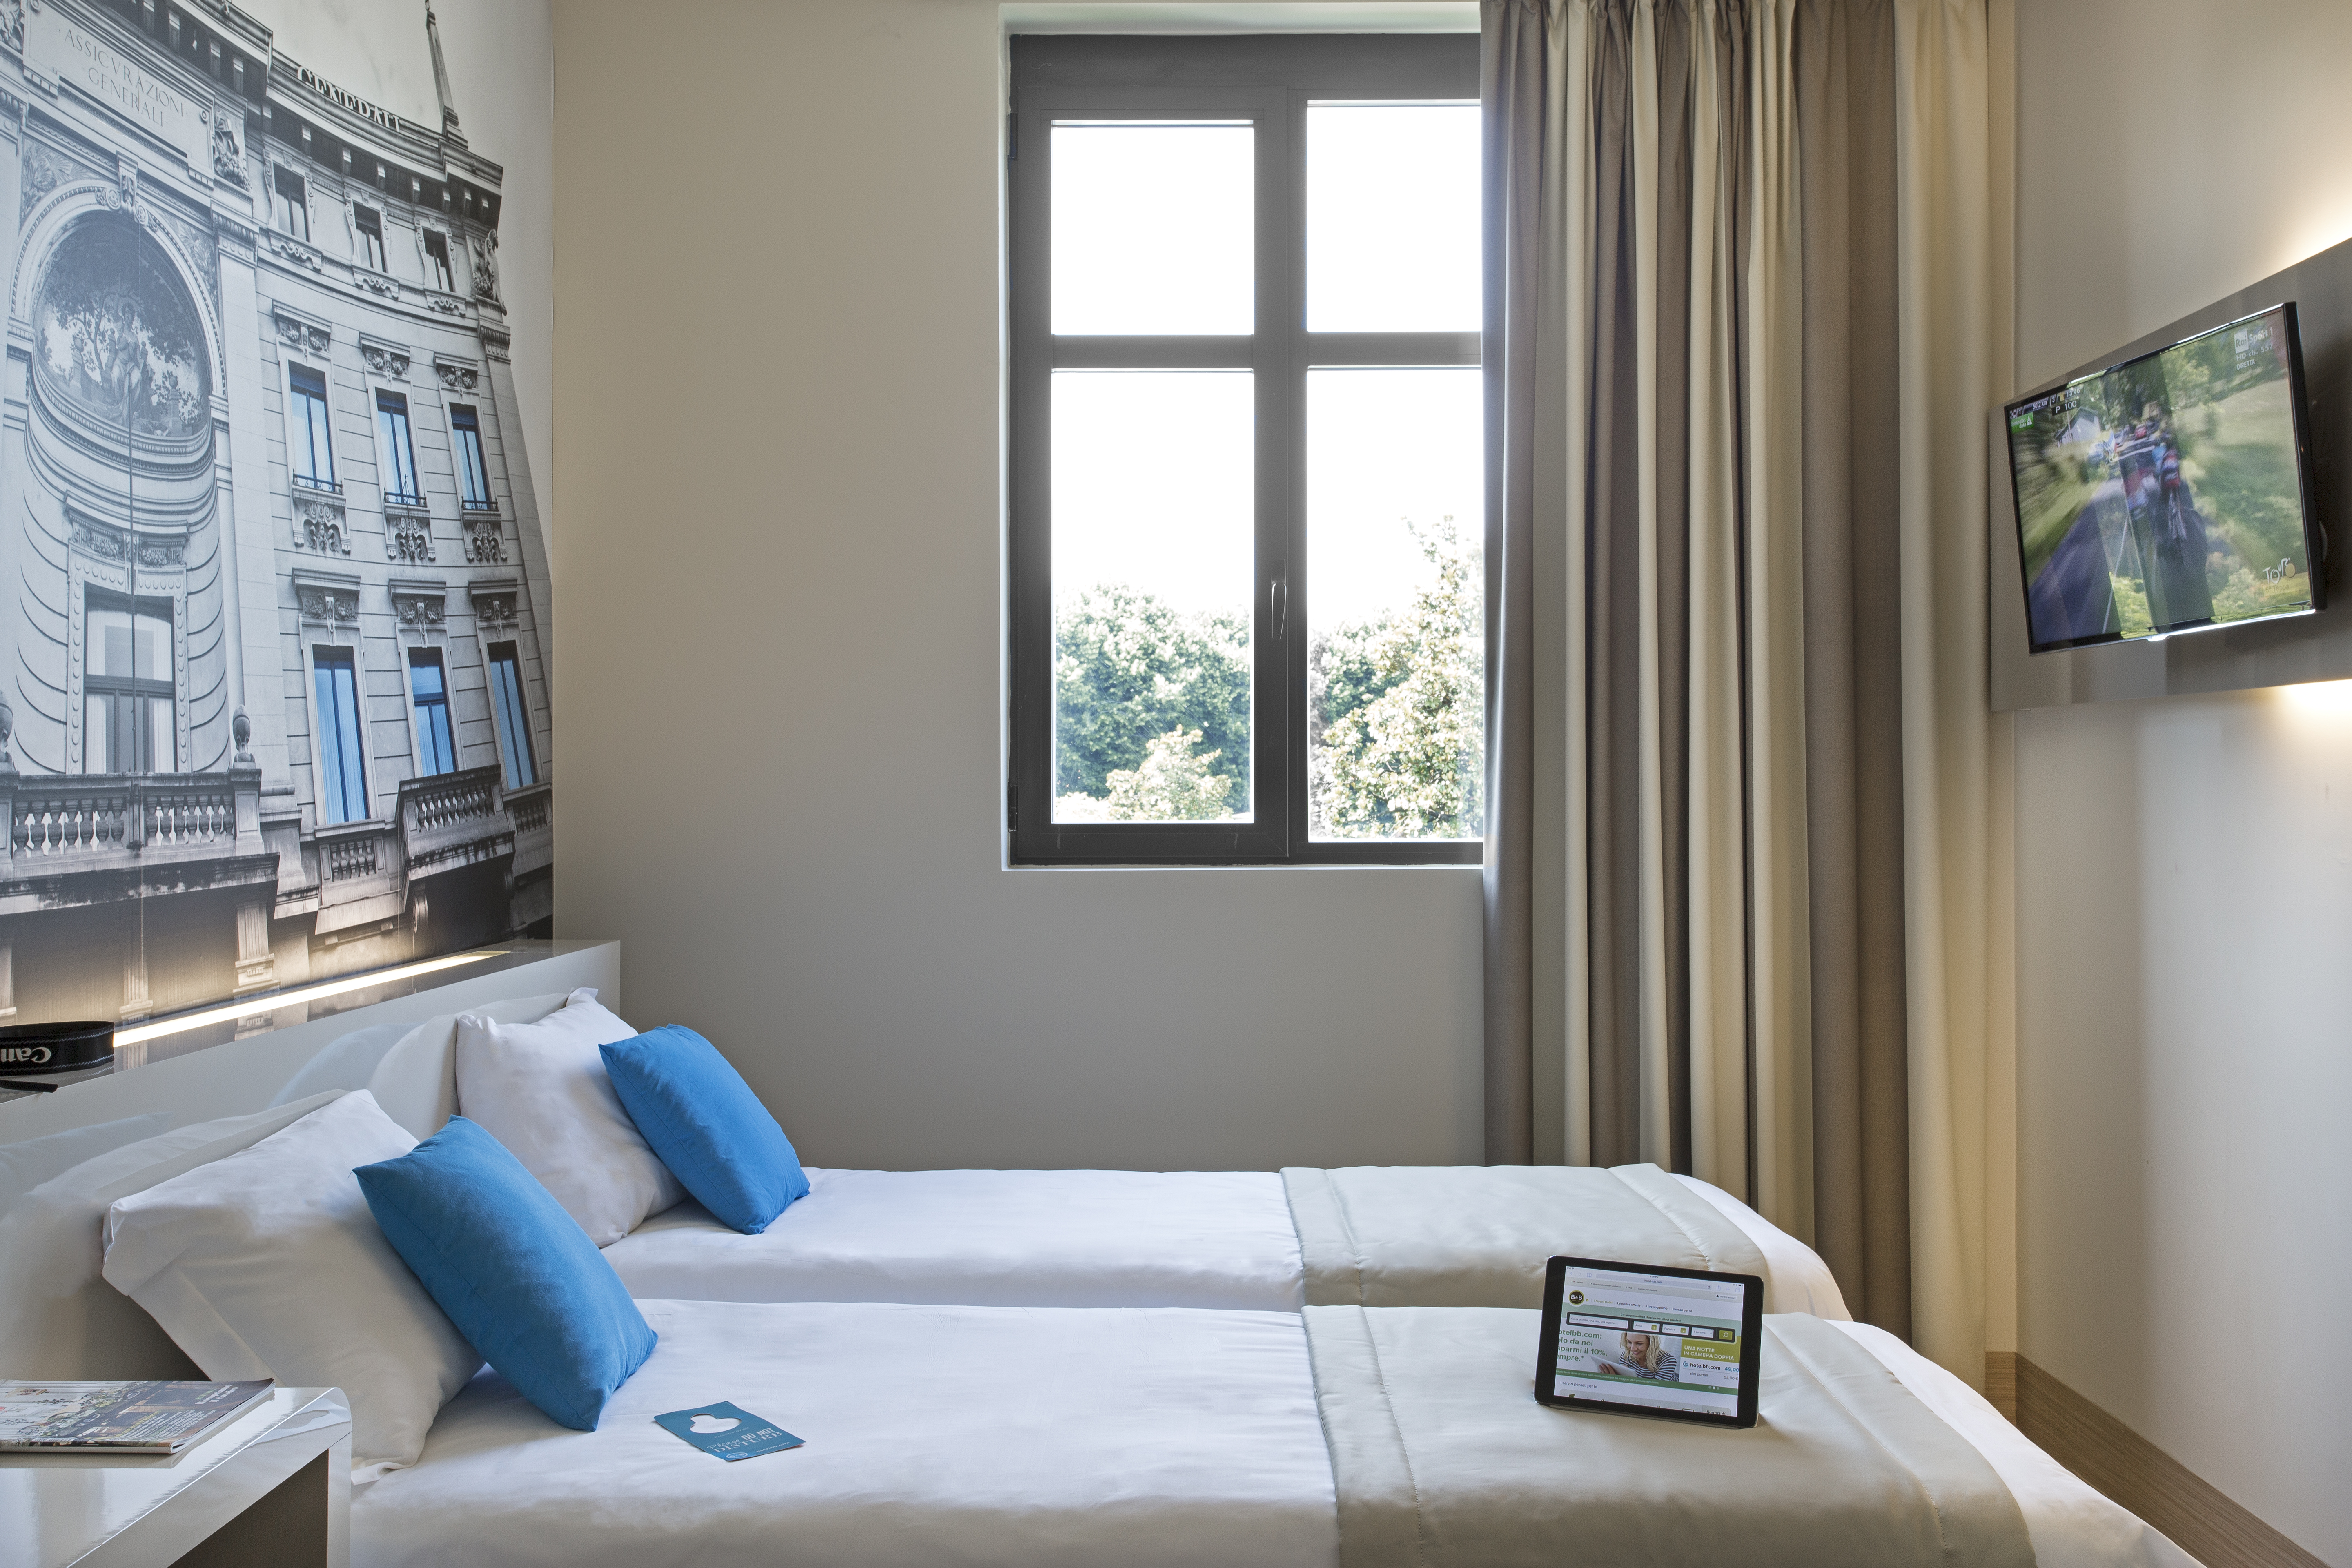 Student Accomodation for rent in double room in B&B Cenisio, Via Messina  38, in Milano, Italy